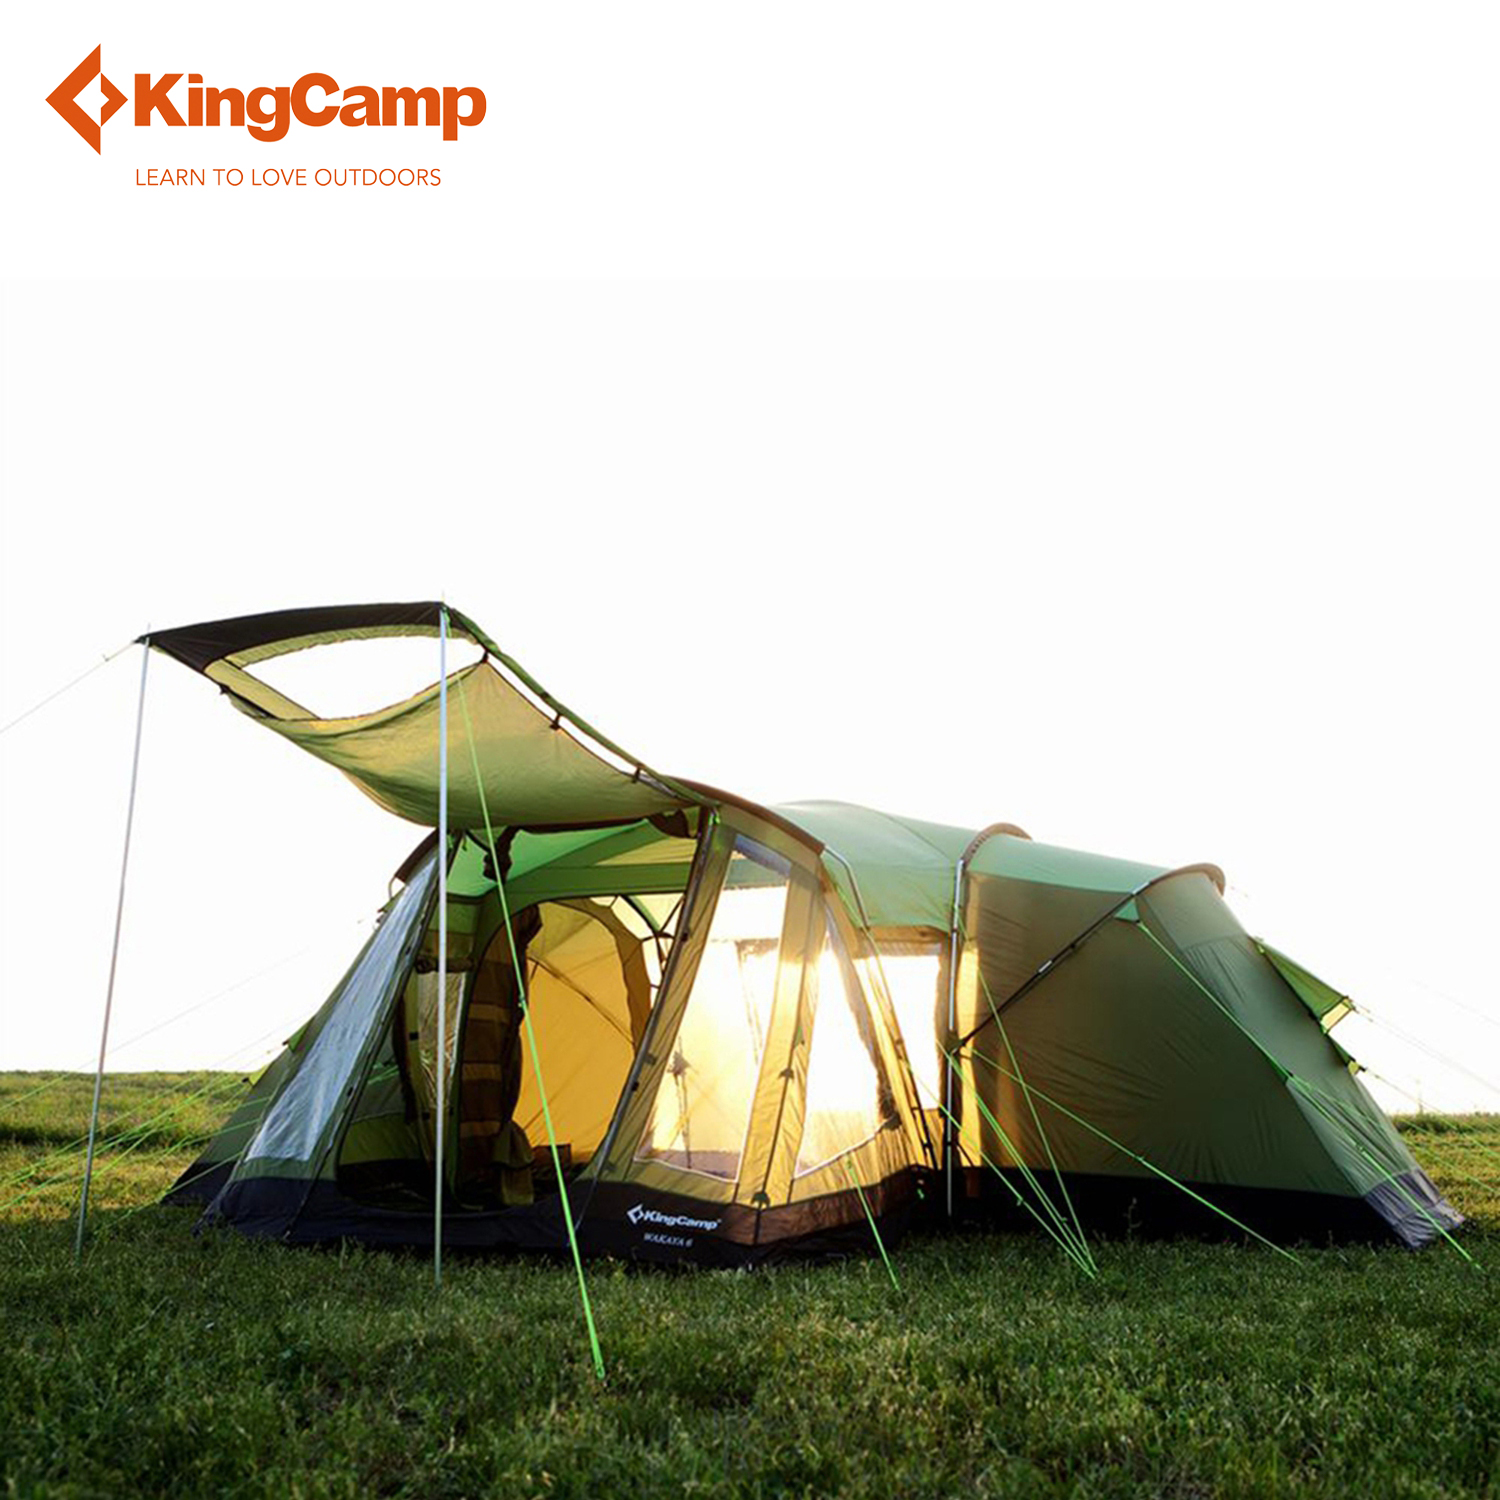 KingCamp 6-Person 3-Season Outdoor Family Tent with Great Room for Car Travel Rainproof Windproof Tent for Self-driving Camping